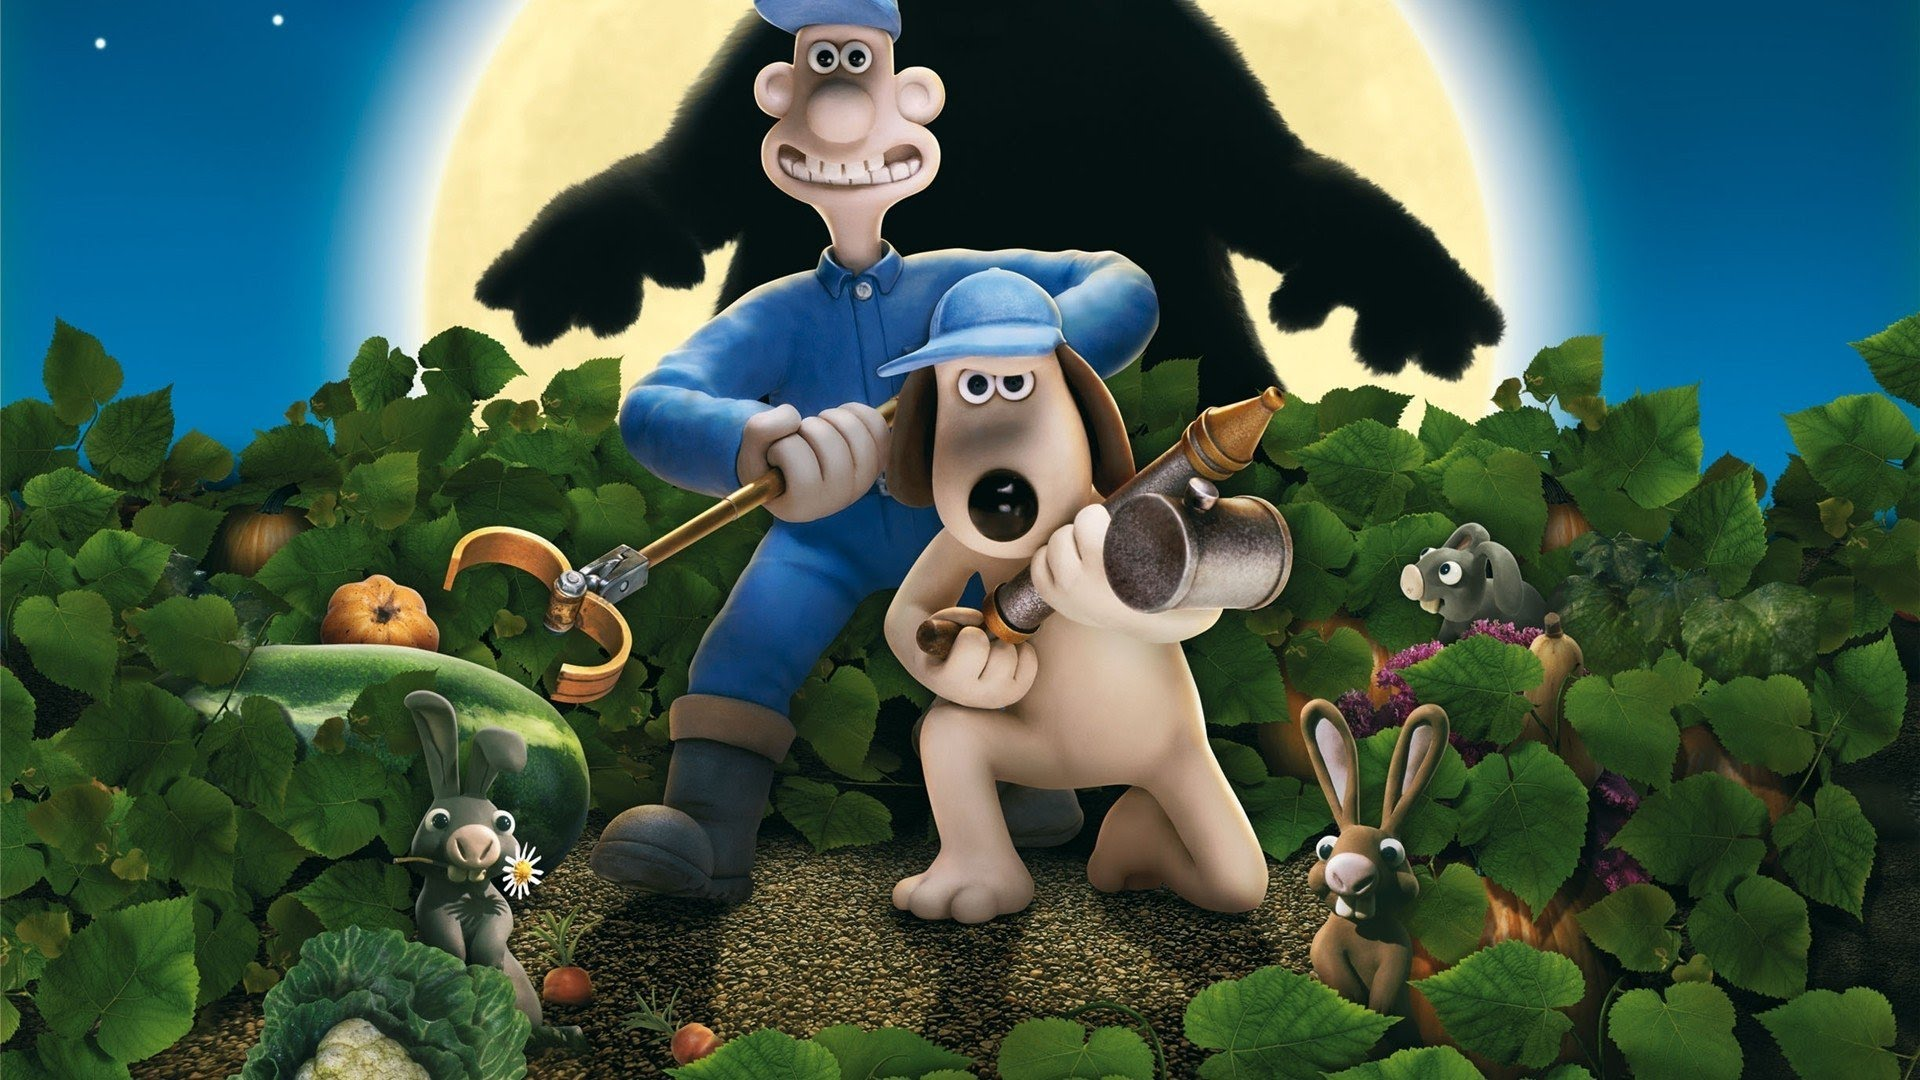 Wallace and Gromit in The Curse of the Were-Rabbit.